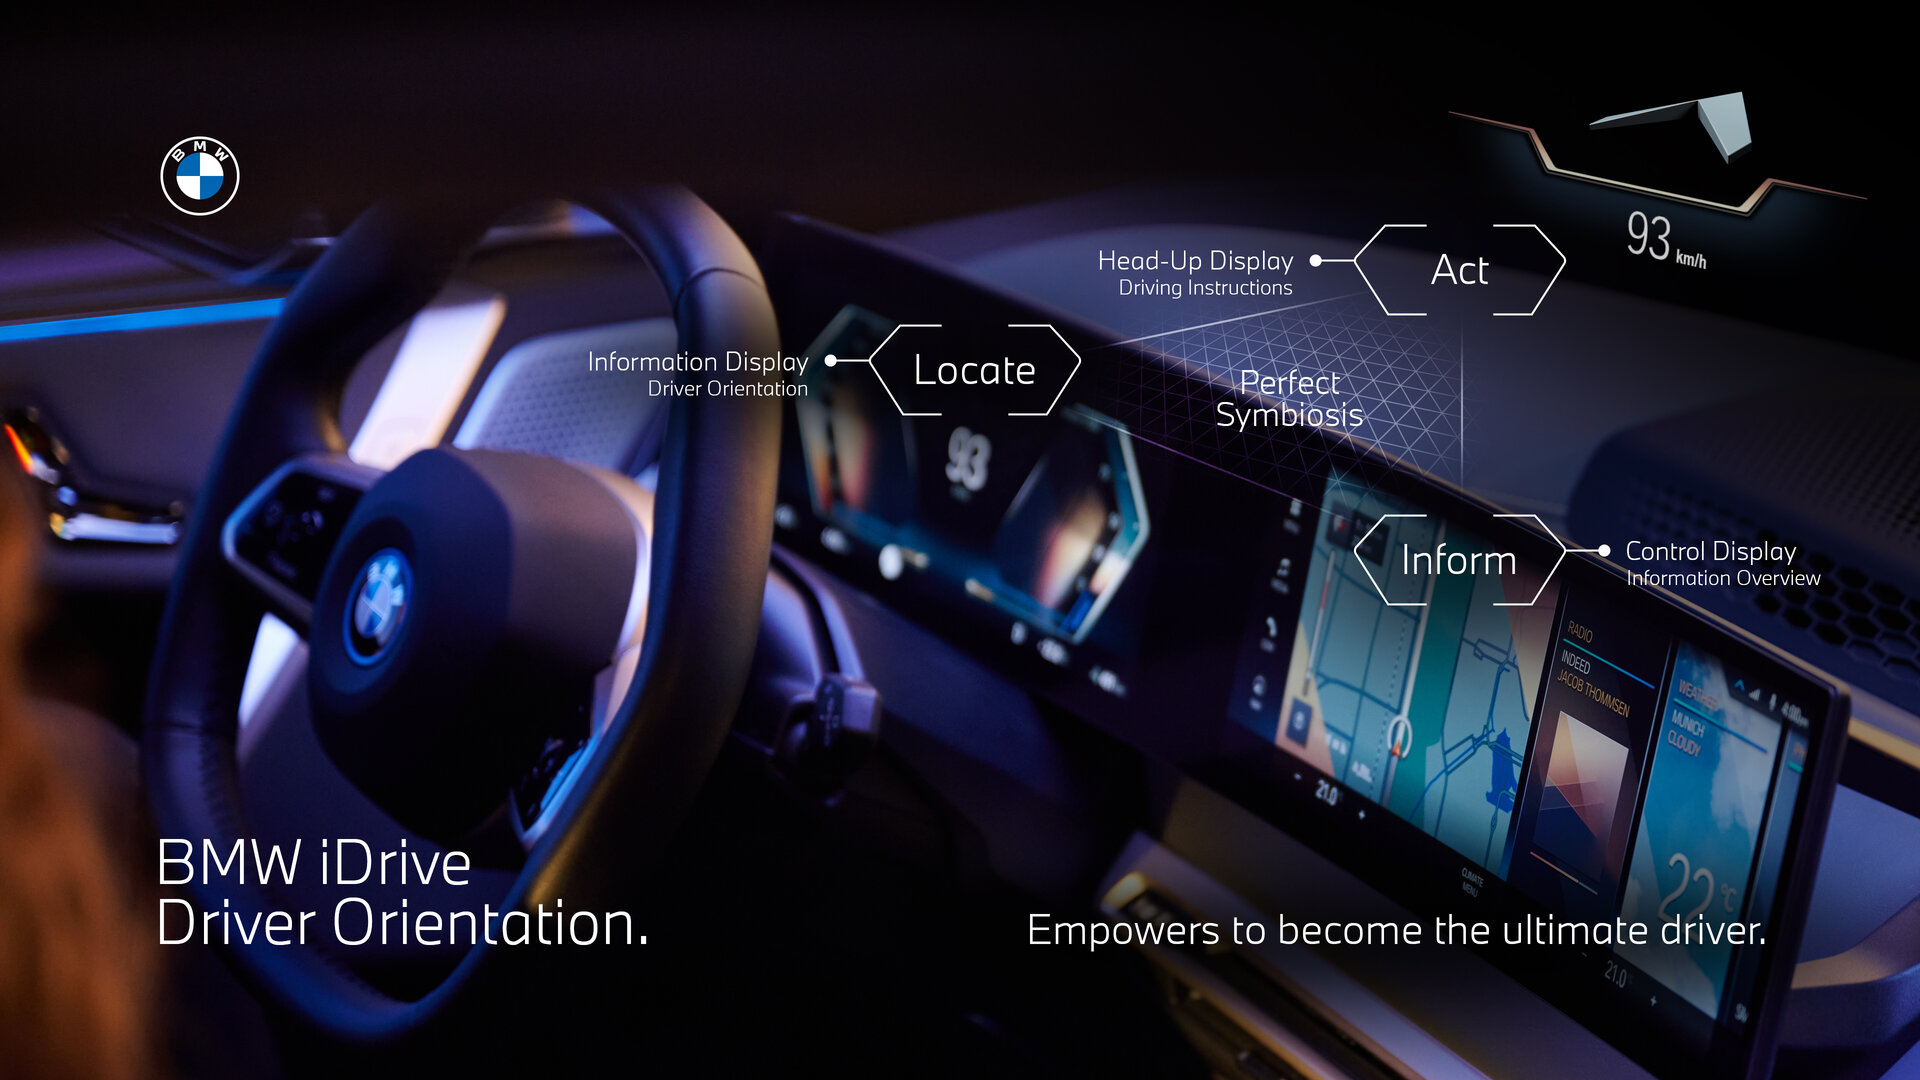 """BMW iDrive folgt """"Act, Locate and Inform"""""""